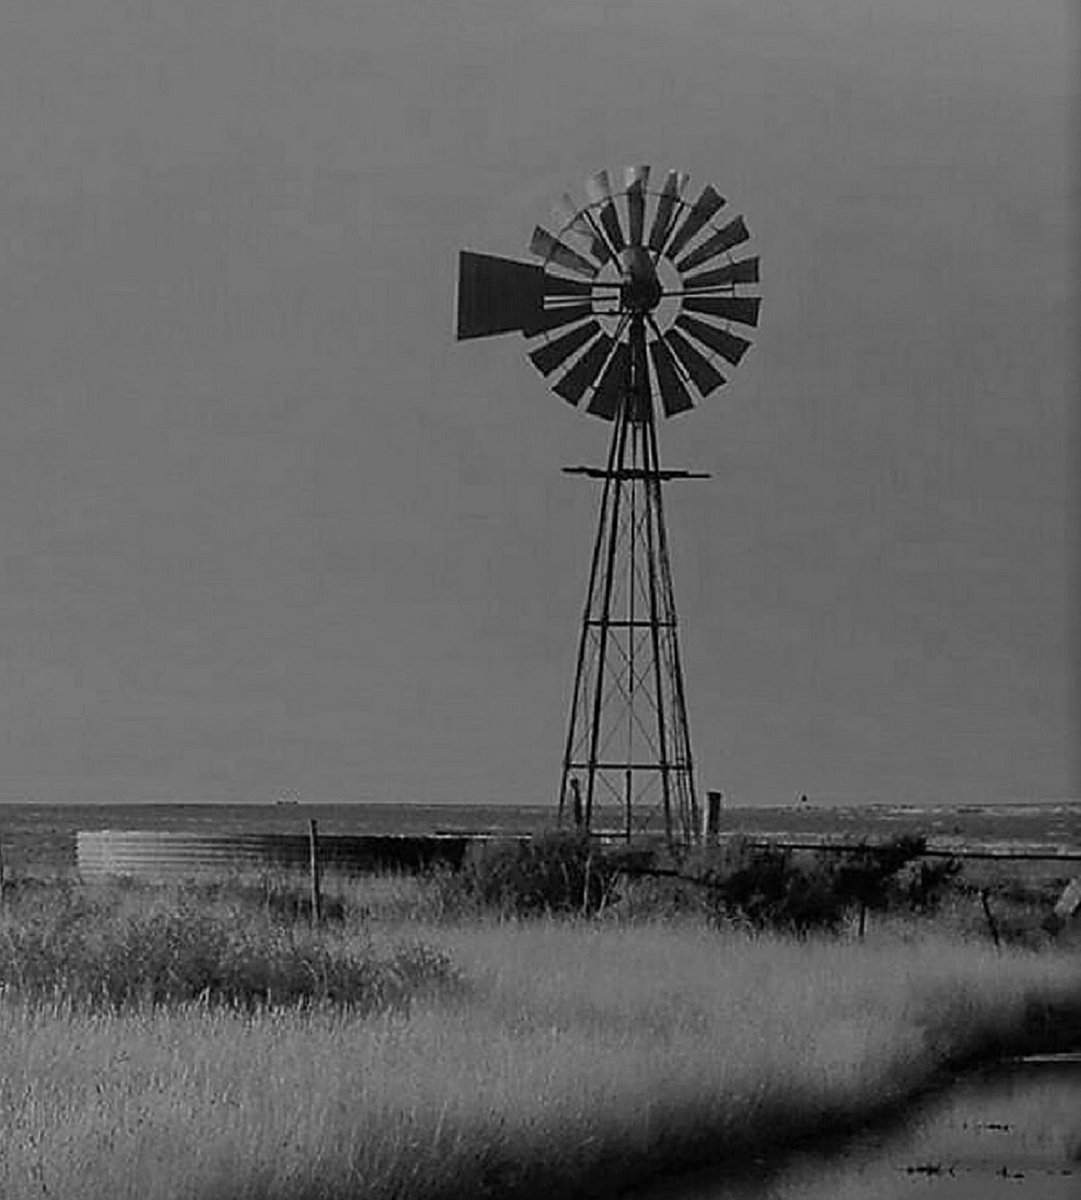 Windmills and Waterholes by Don Berryhill